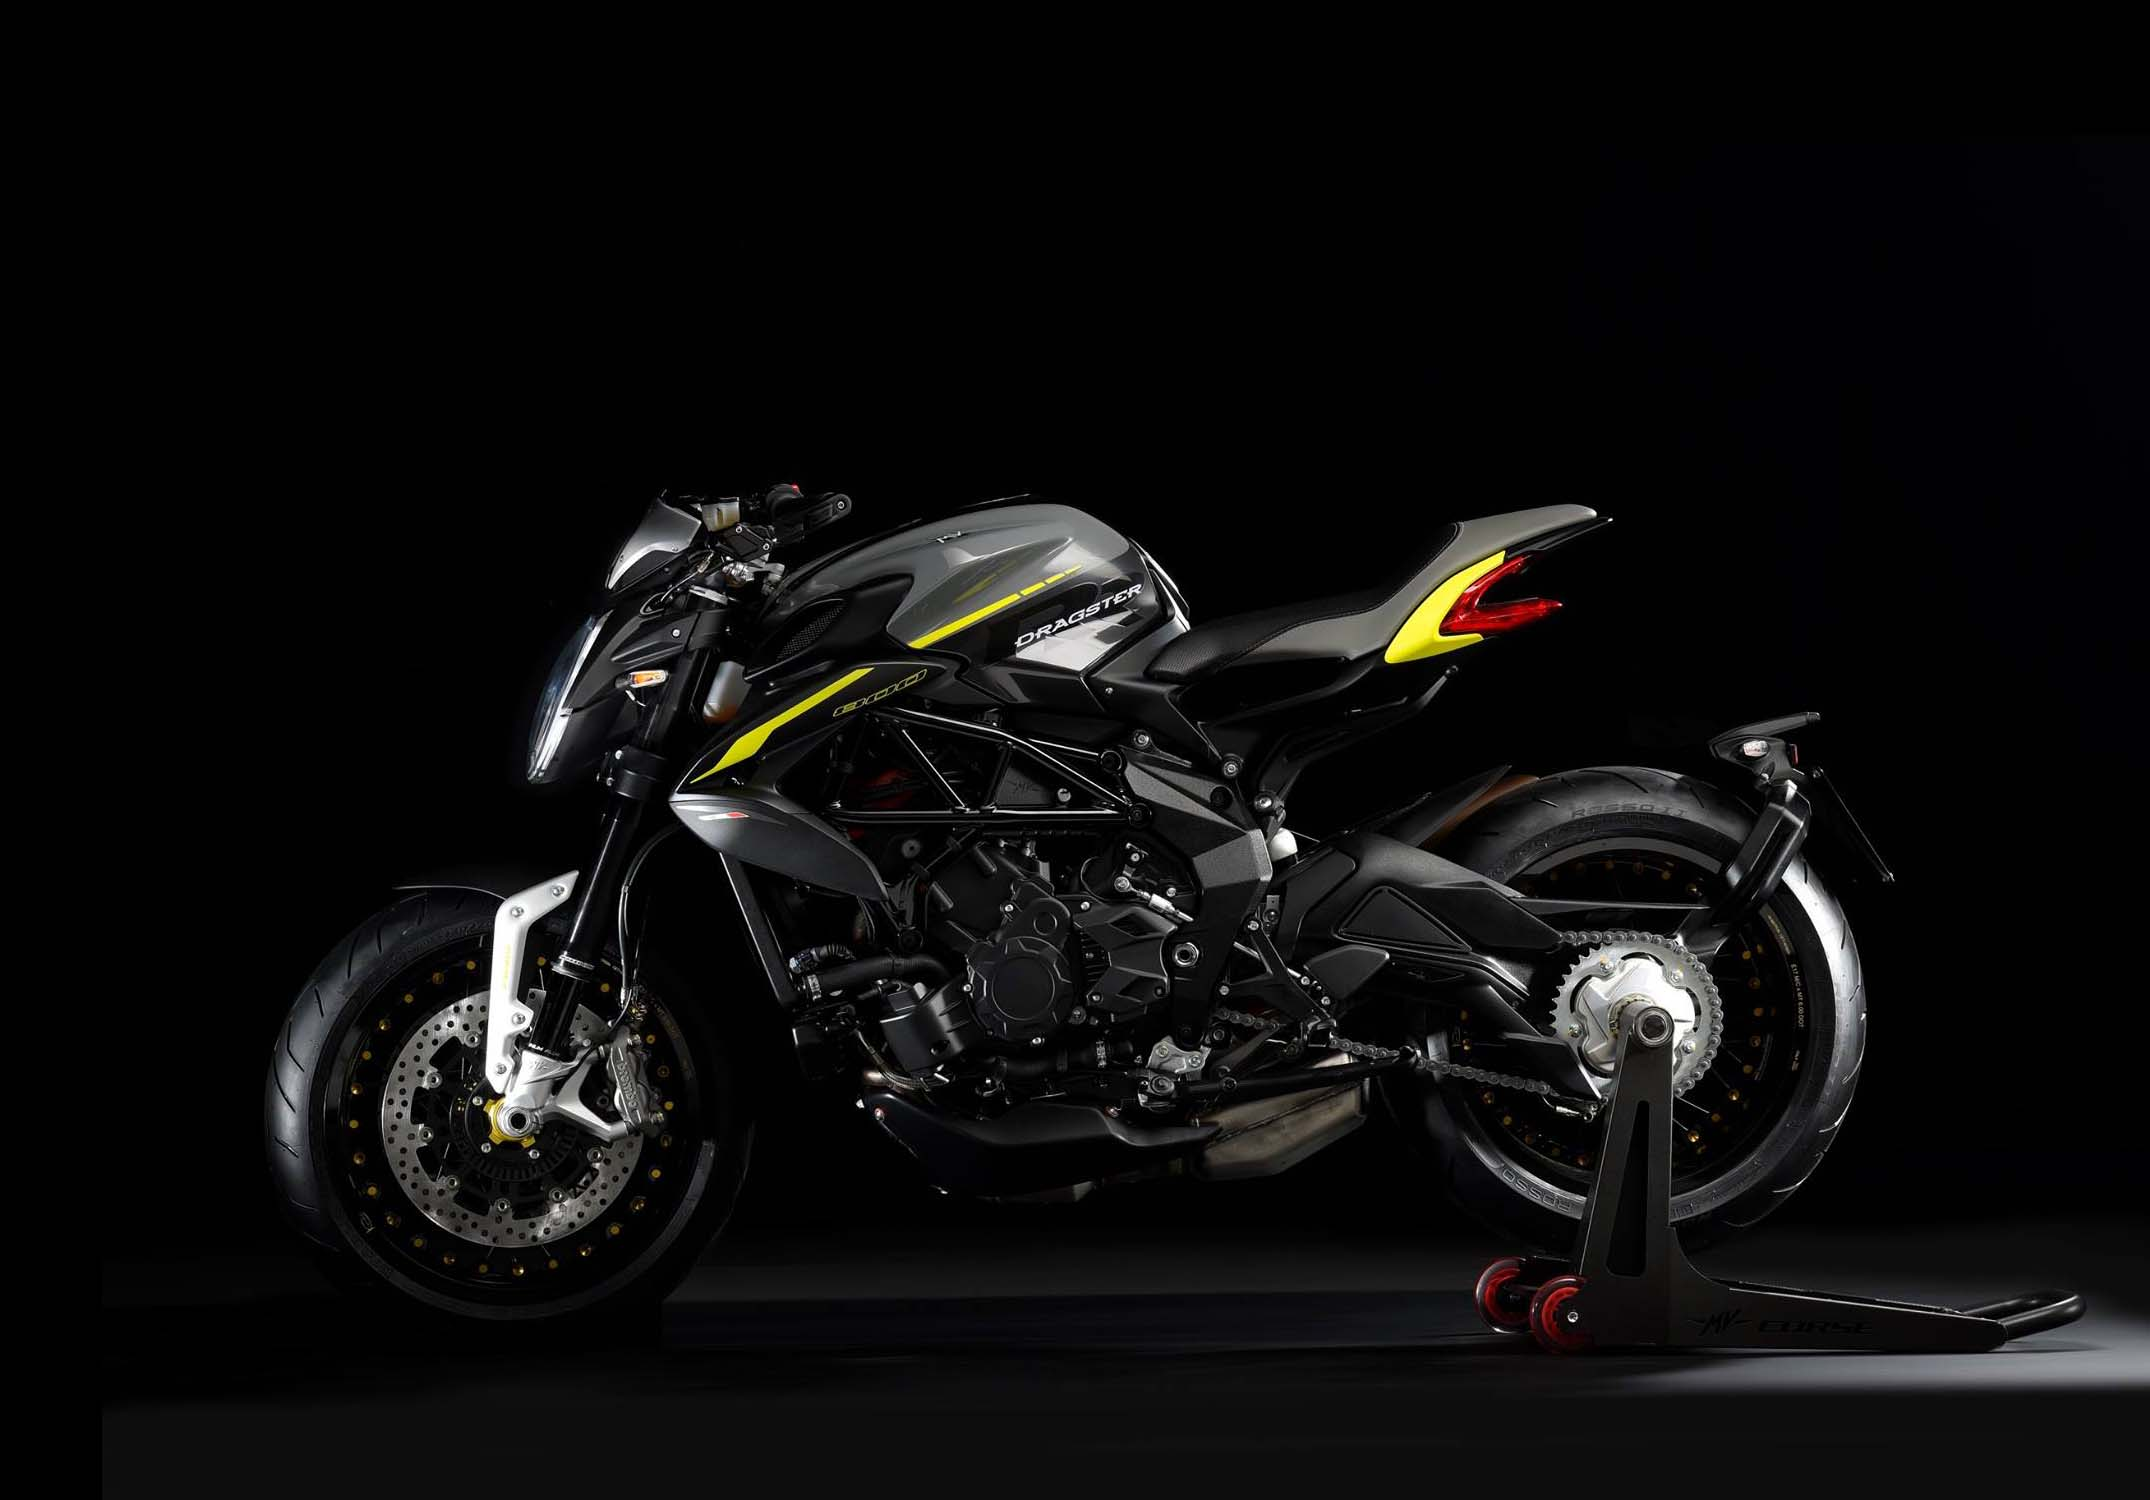 No One Seemed To Notice That The Mv Agusta Dragster 800 Rr Is New For The 2018 Model Year Asphalt Rubber